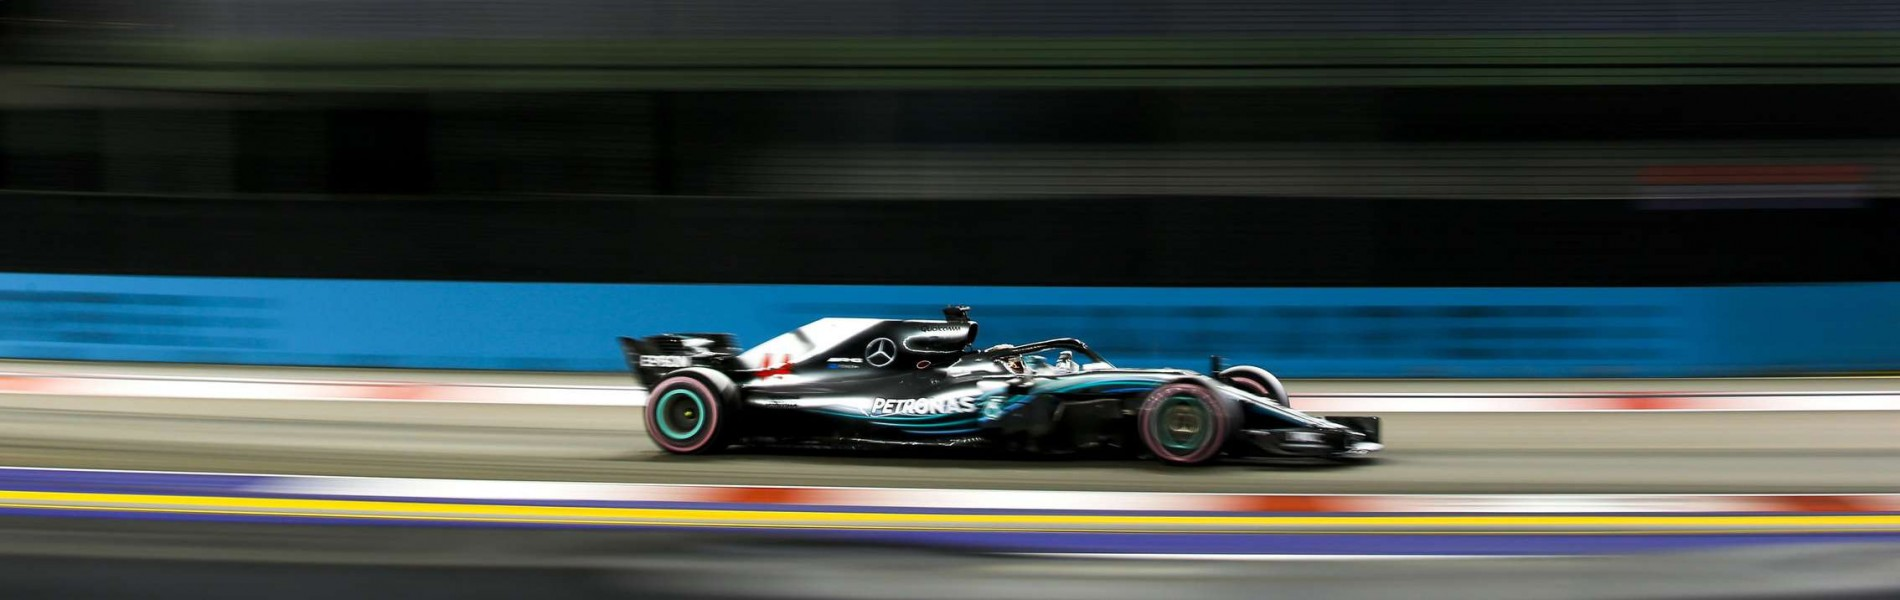 Friday and Saturday images from the 2018 Singapore Grand Prix